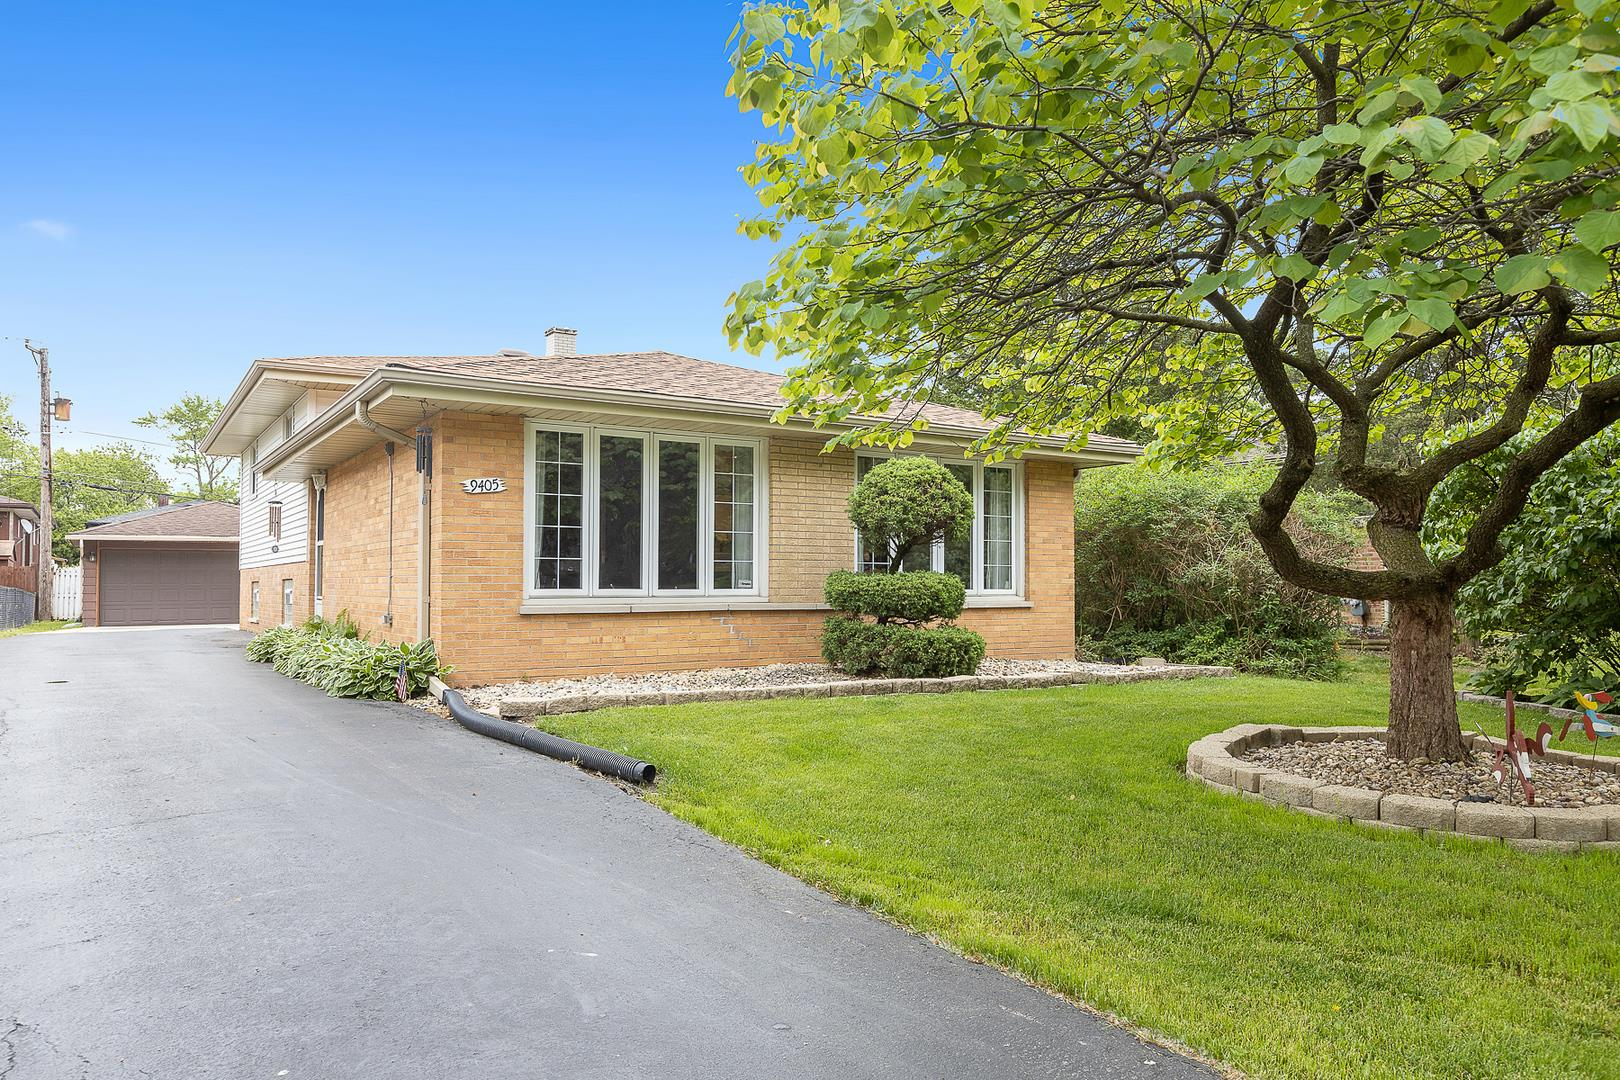 9405 S 82nd Court, Hickory Hills, IL 60457 - #: 10736958